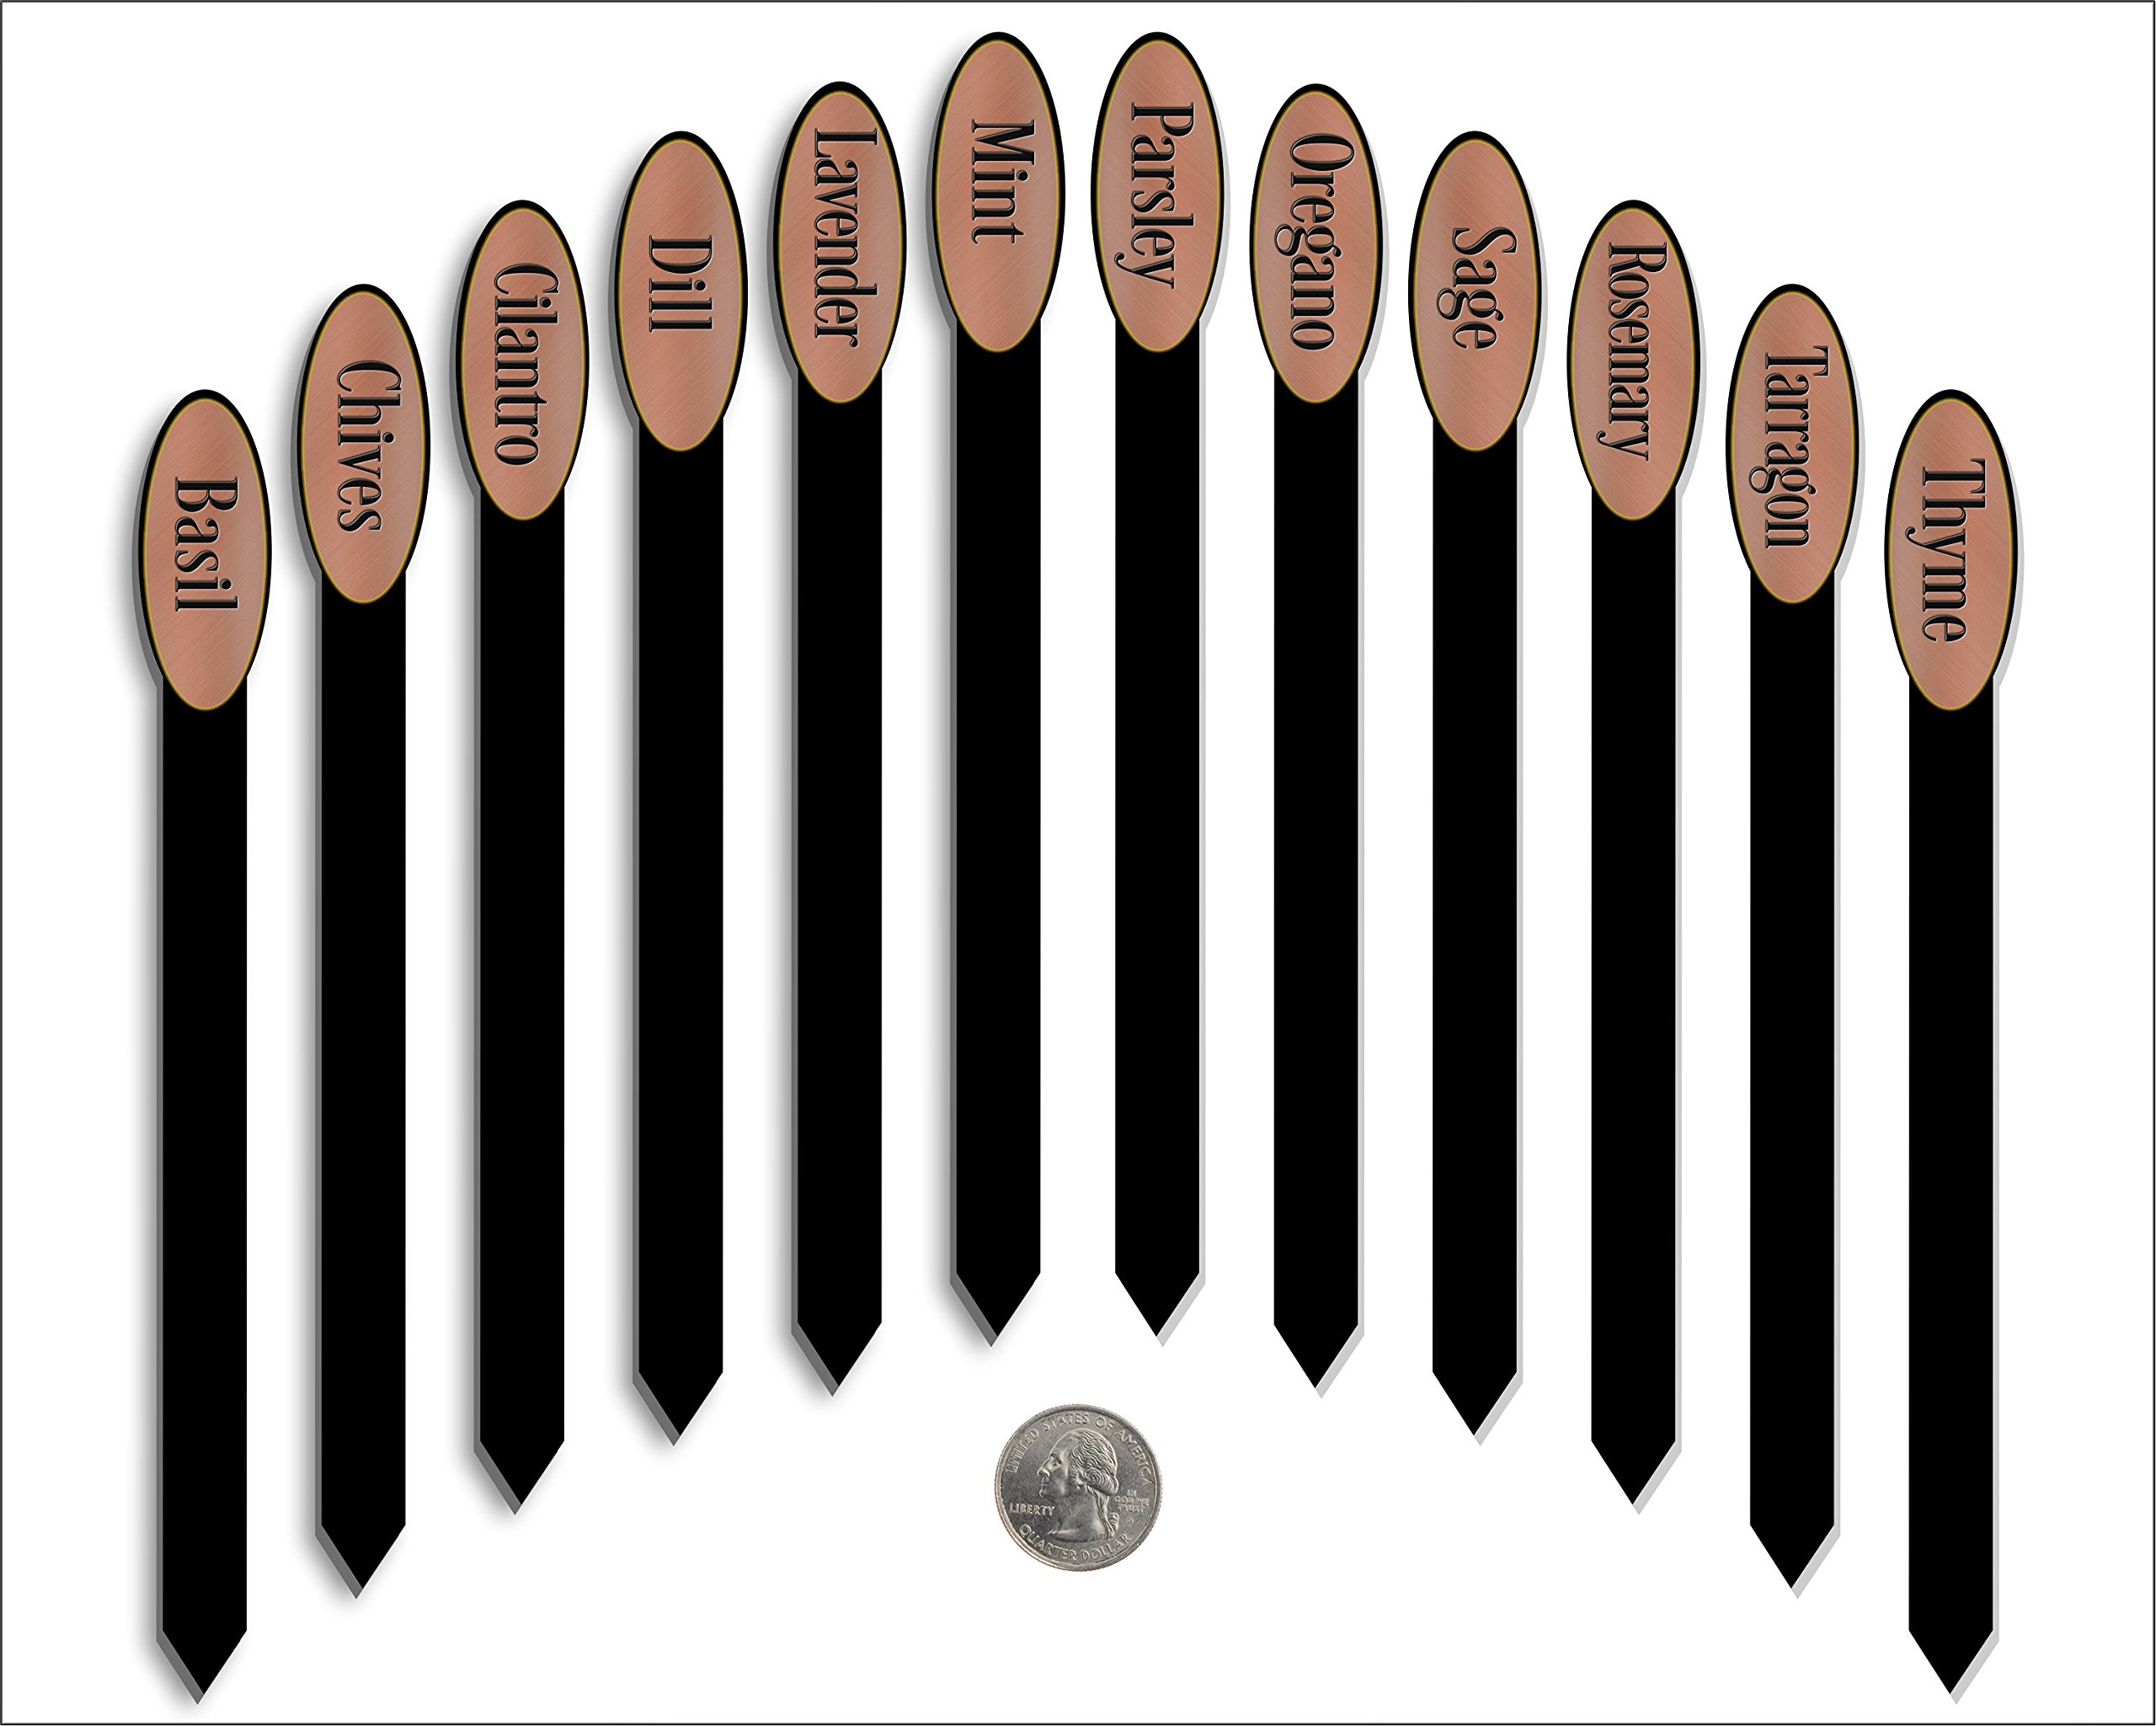 Red Tail Crafters Herb Garden Plant Markers Laser Etched Metallic Oval Stick Style 12/Set 08in Brushed Copper/Black by Red Tail Crafters